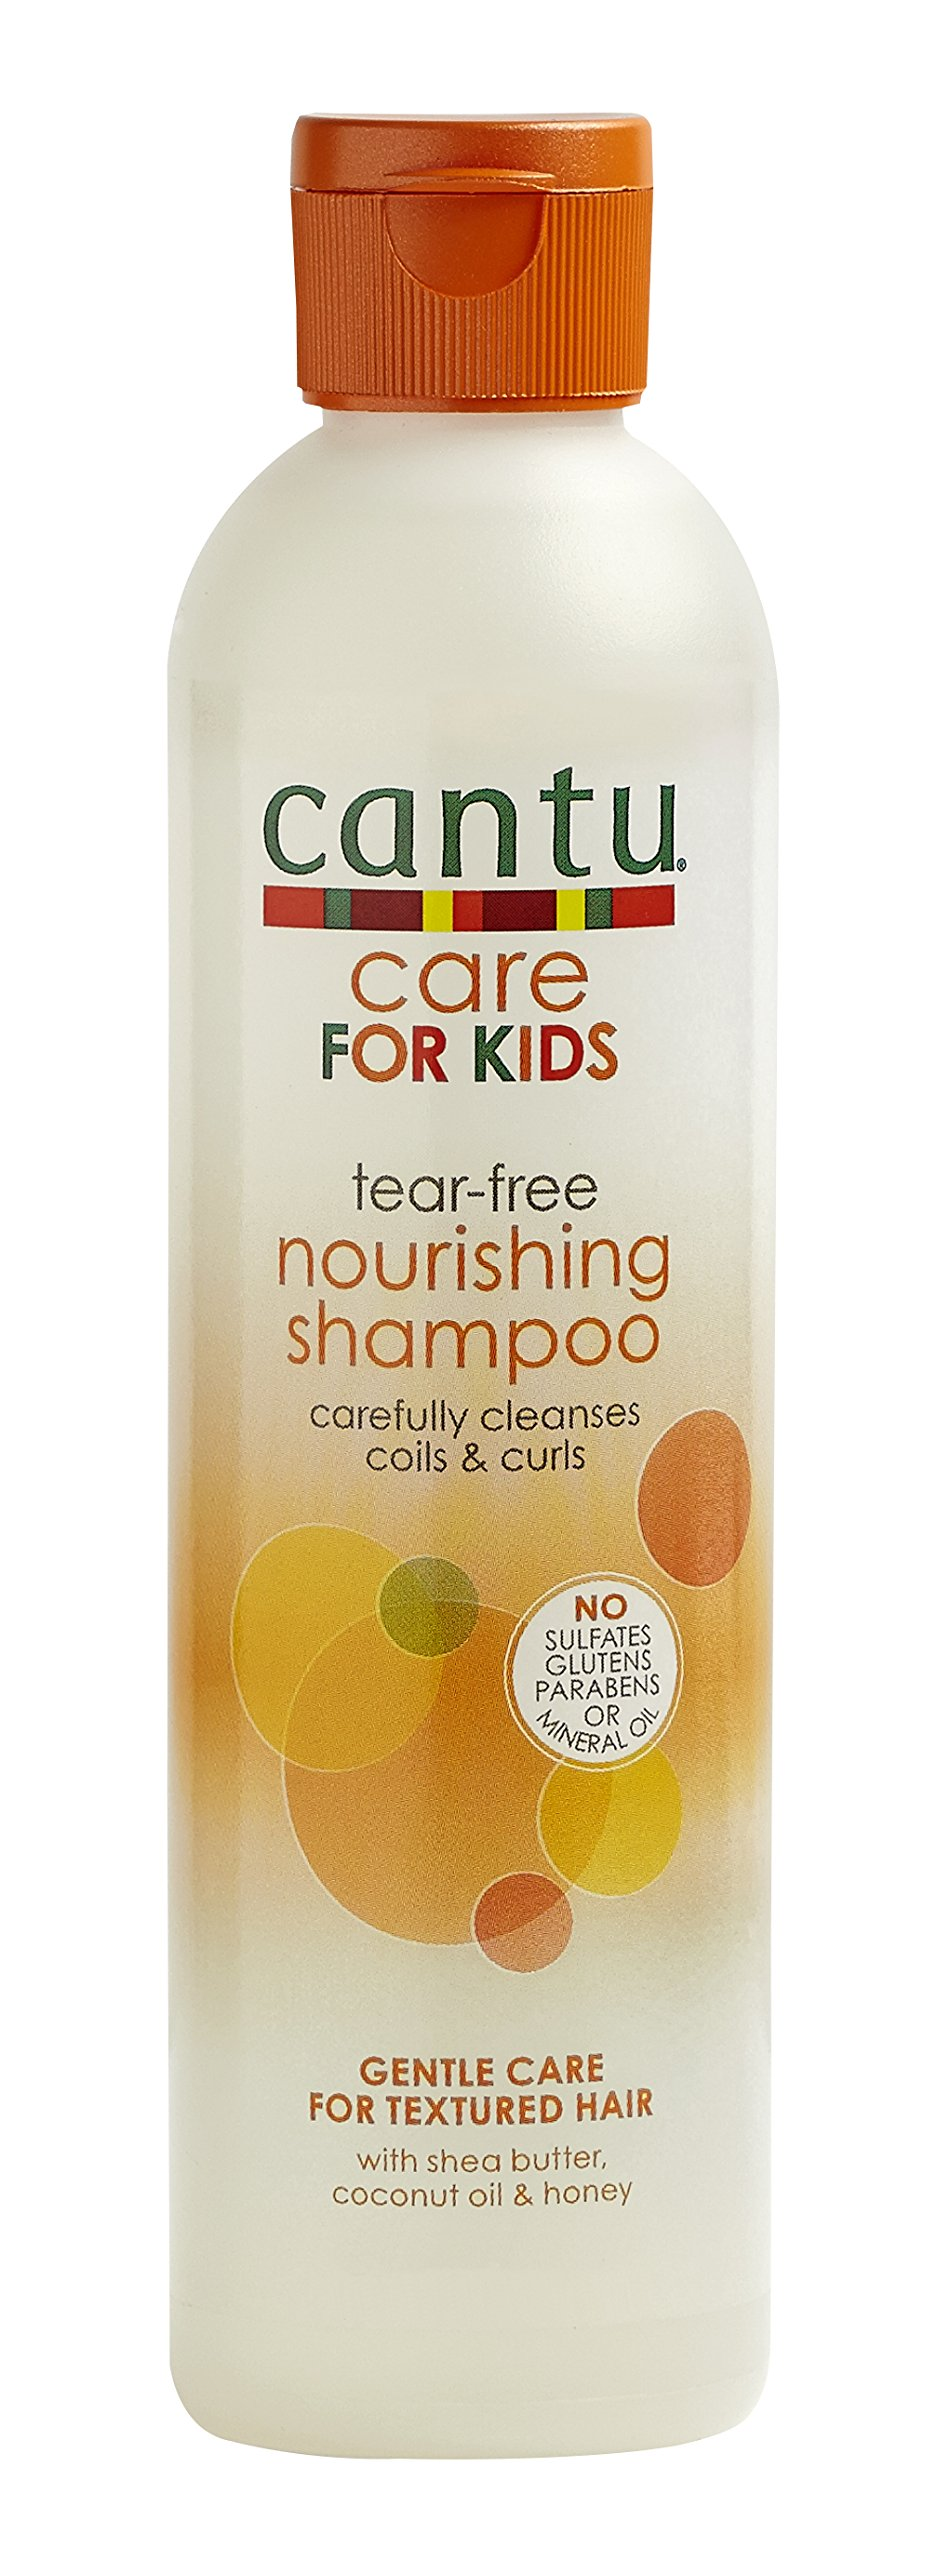 Cantu Care for Kids Tear-Free Nourishing Shampoo, 8 Fluid Ounce